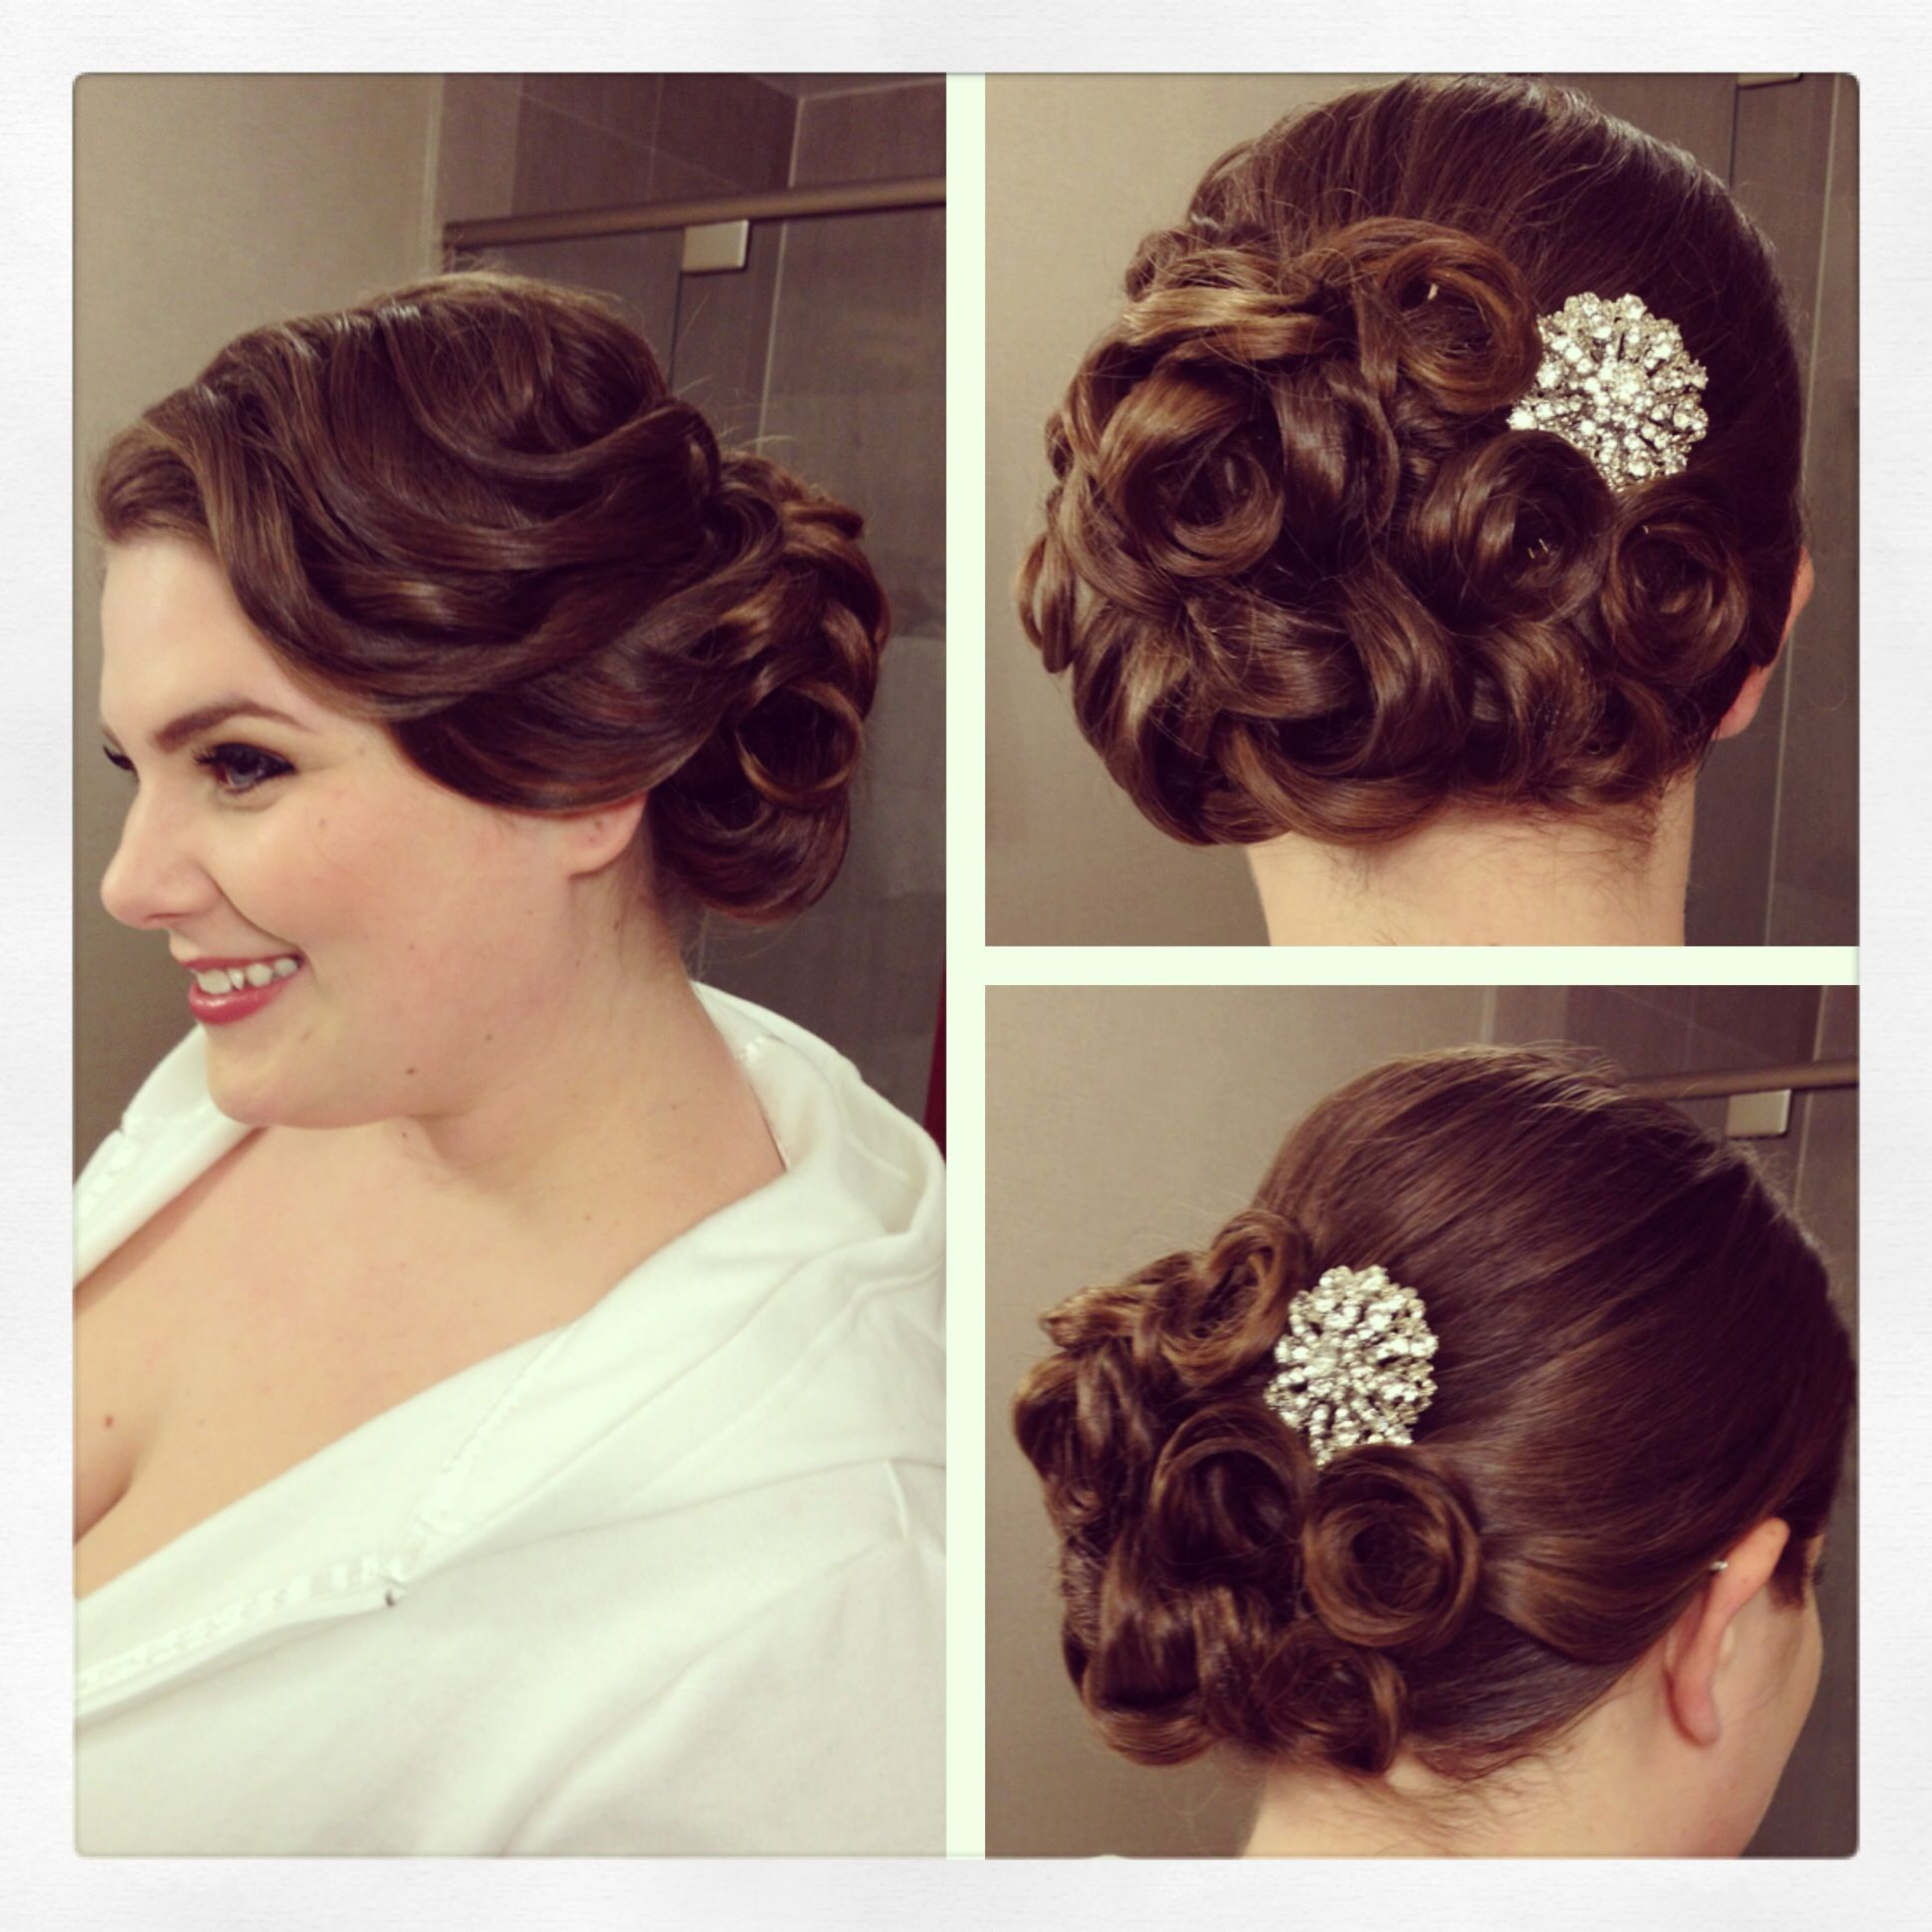 vintage side updo, vintage hairstyle, pin curls, bridal hair, bridal